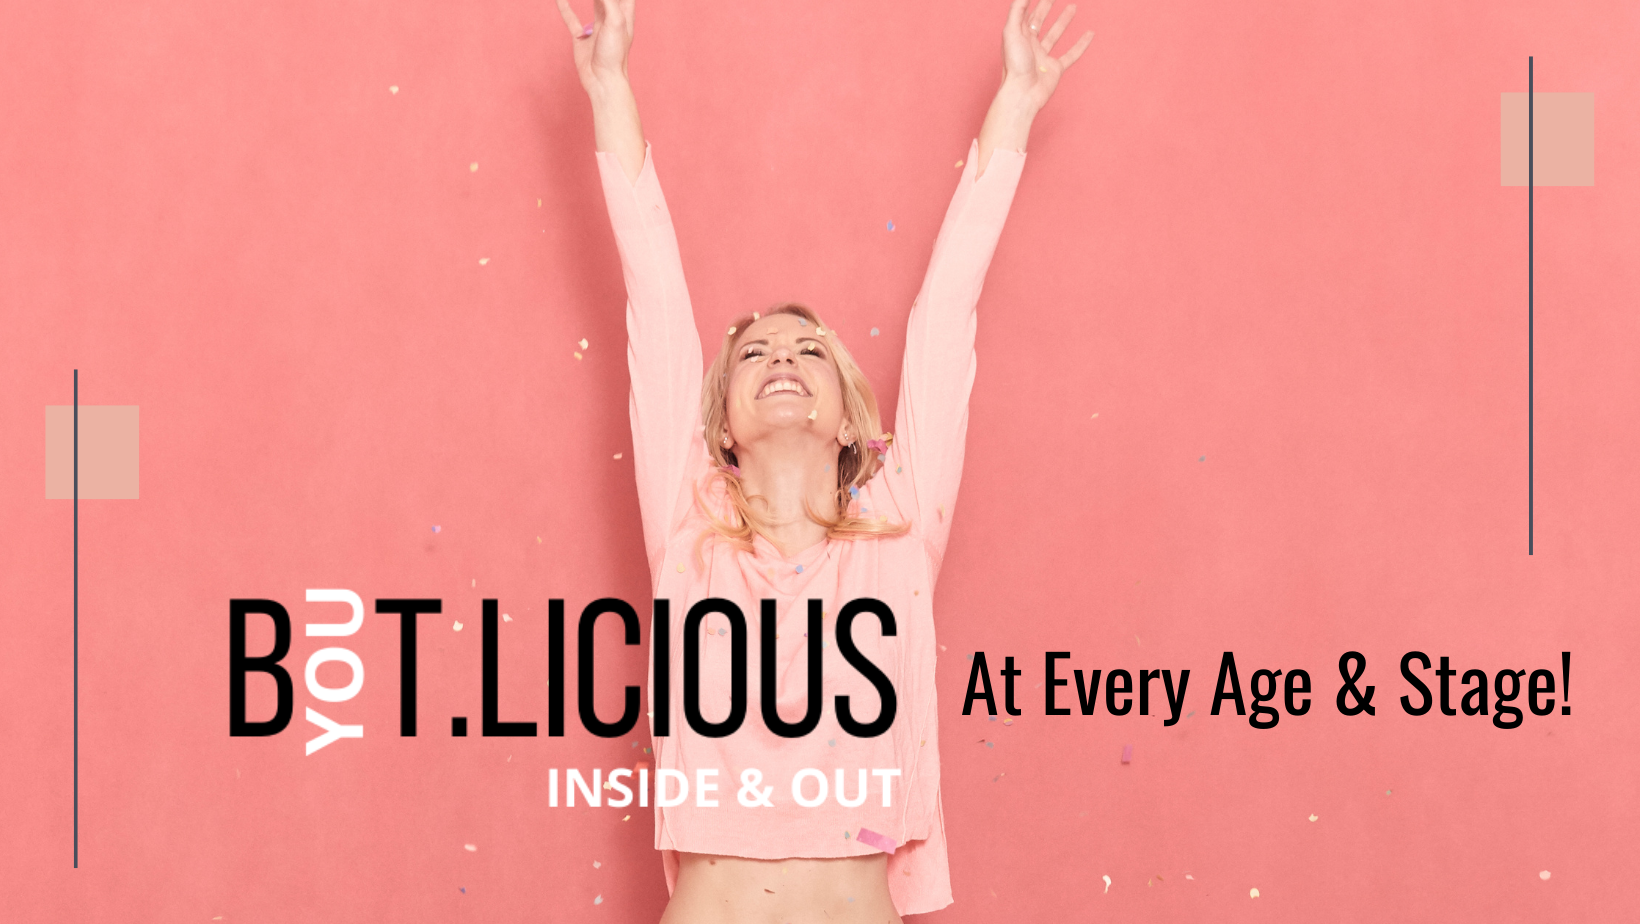 B.YOU.T.LICIOUS Inside & Out at Every Age & Stage!